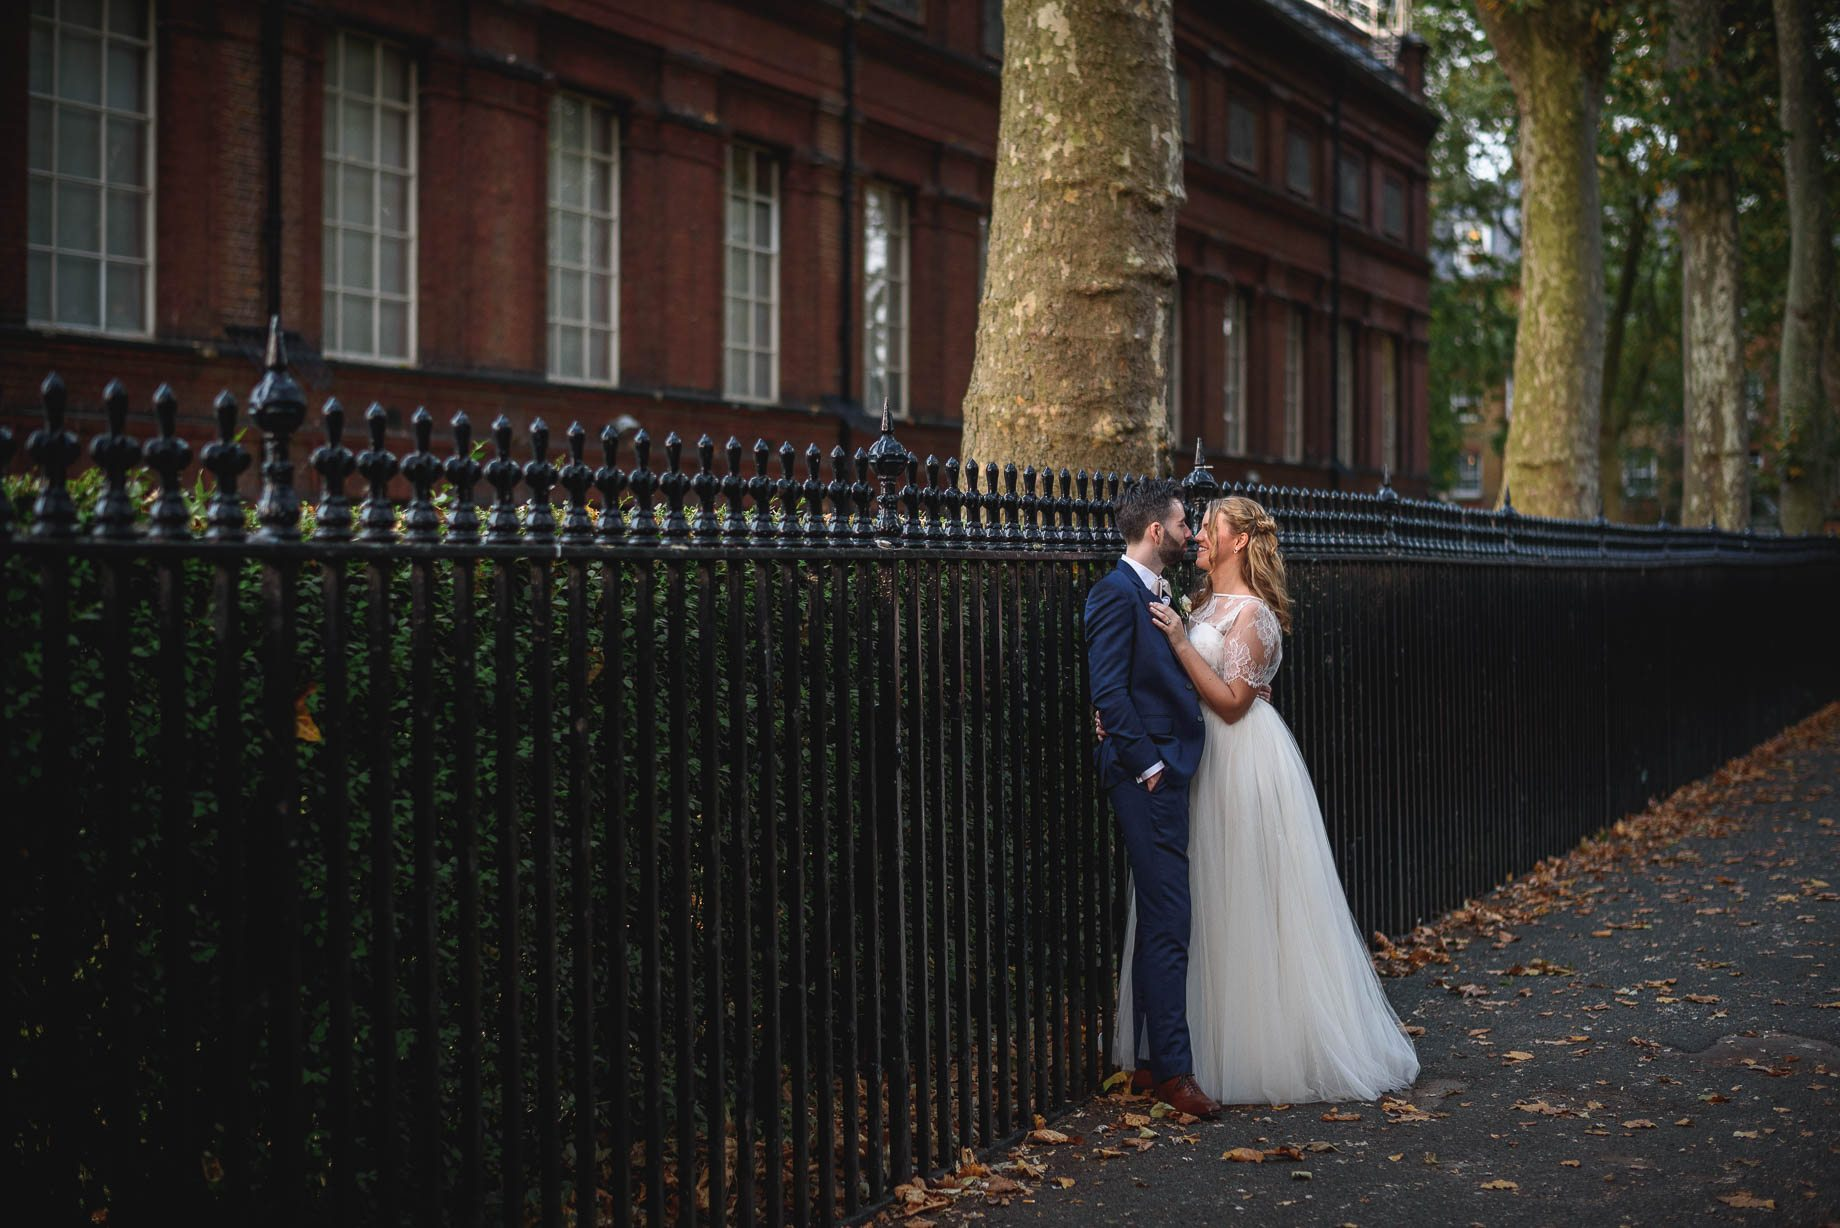 London Wedding Photography - Guy Collier Photography - LJ + Russell (134 of 155)